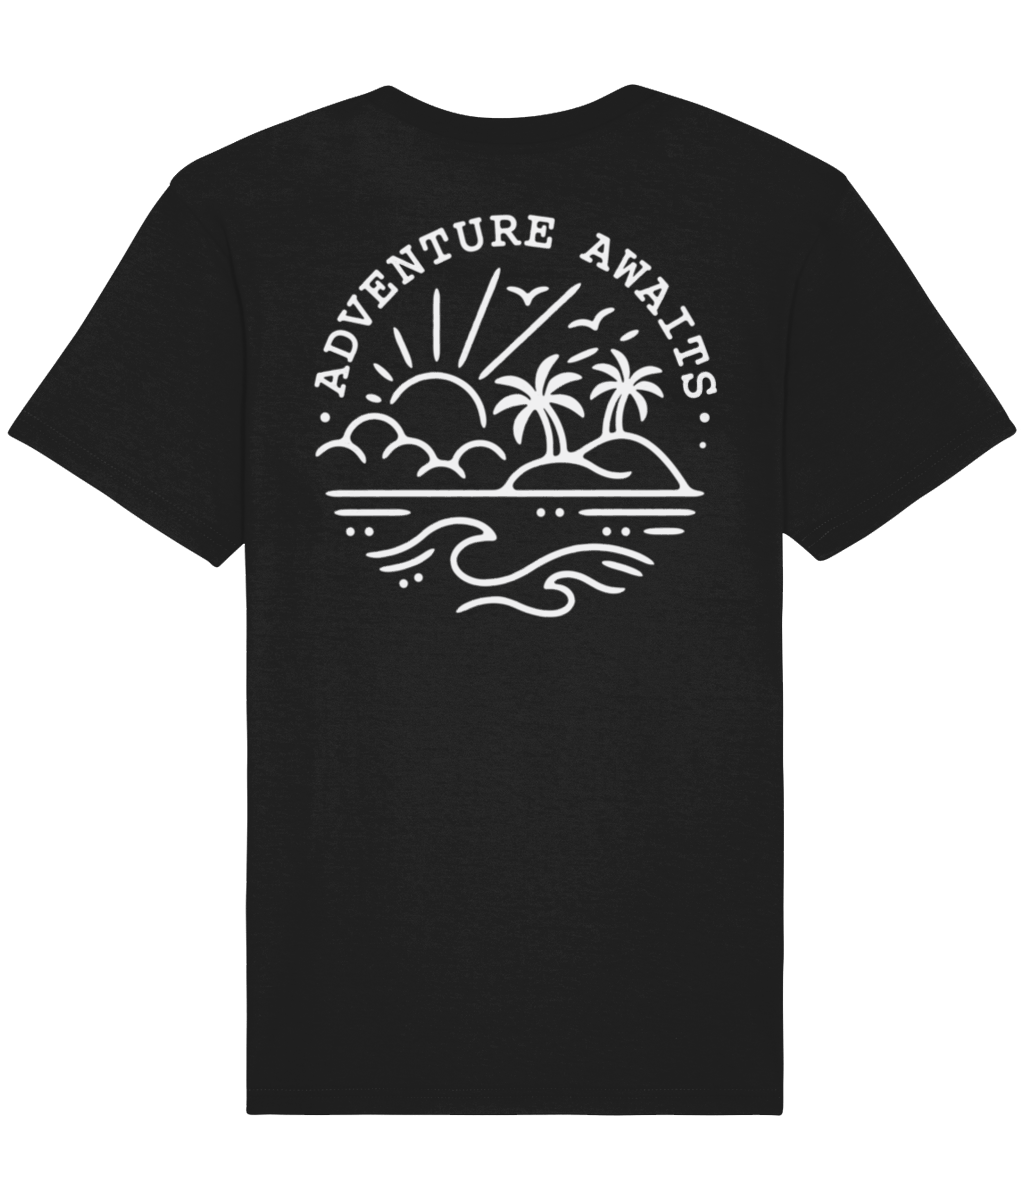 Black Adventure Tee - Elsewhere Clothing Co.